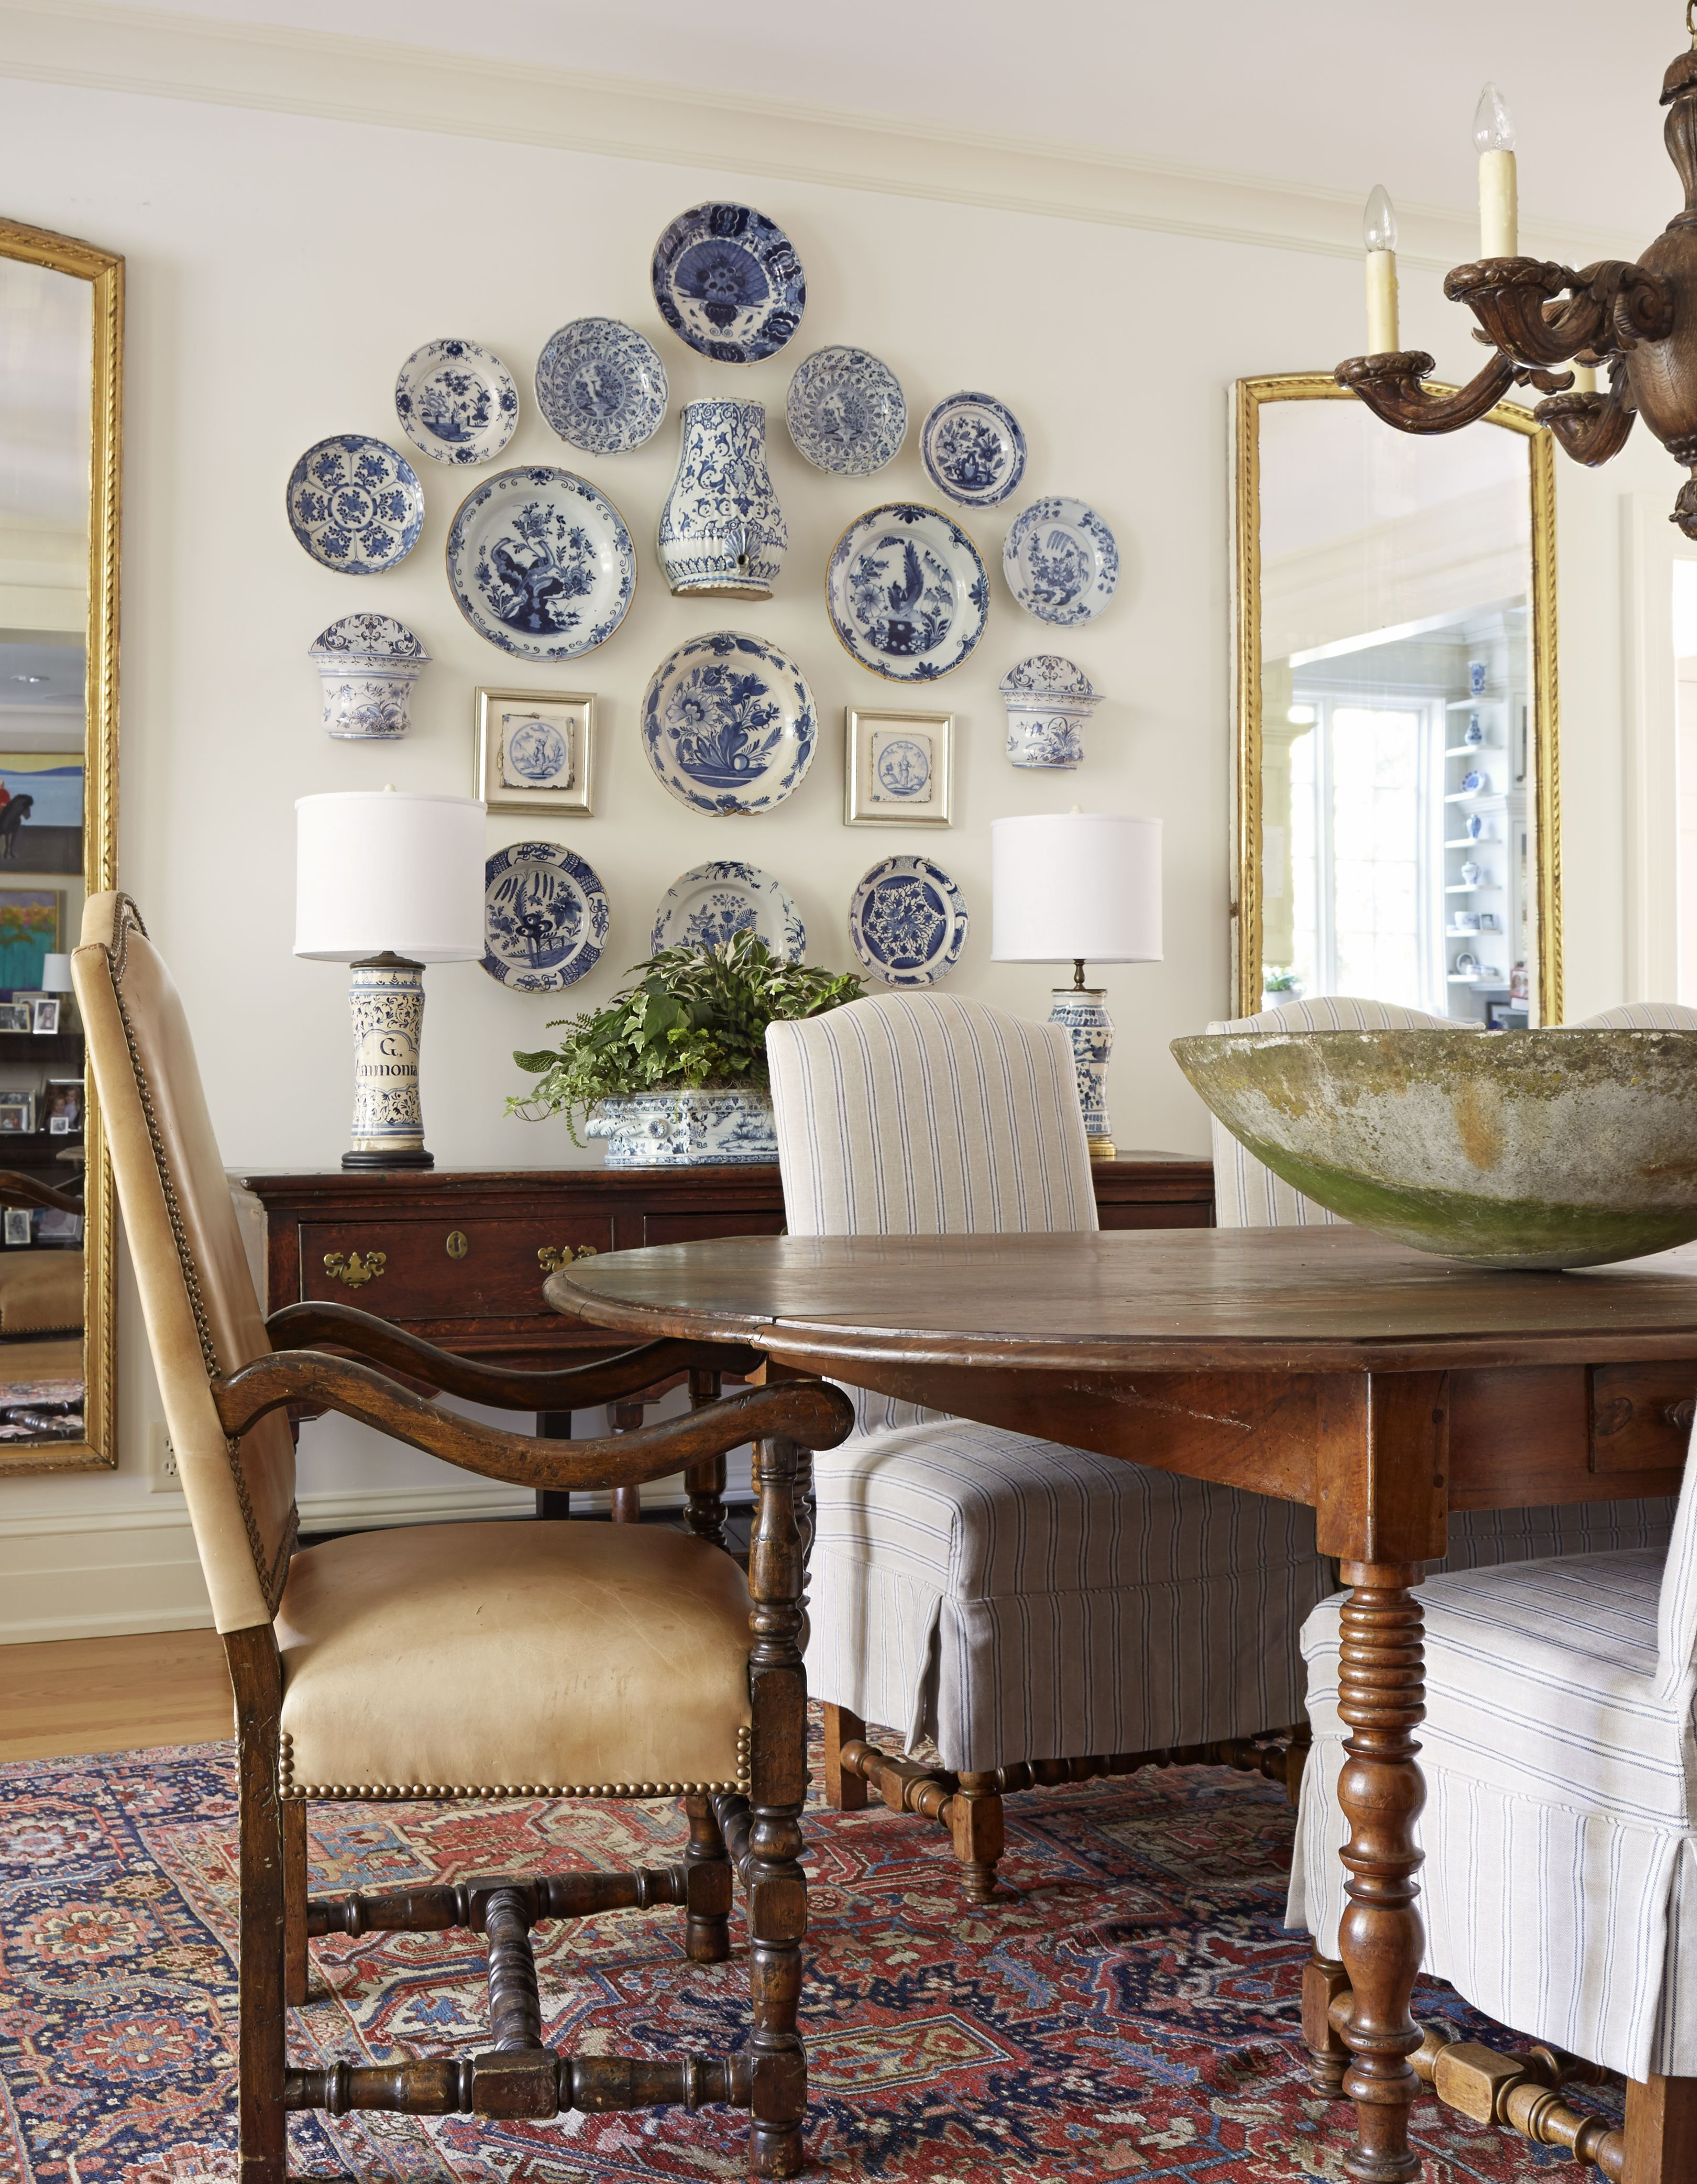 Delft Collection On The Dining Room Wall French Country